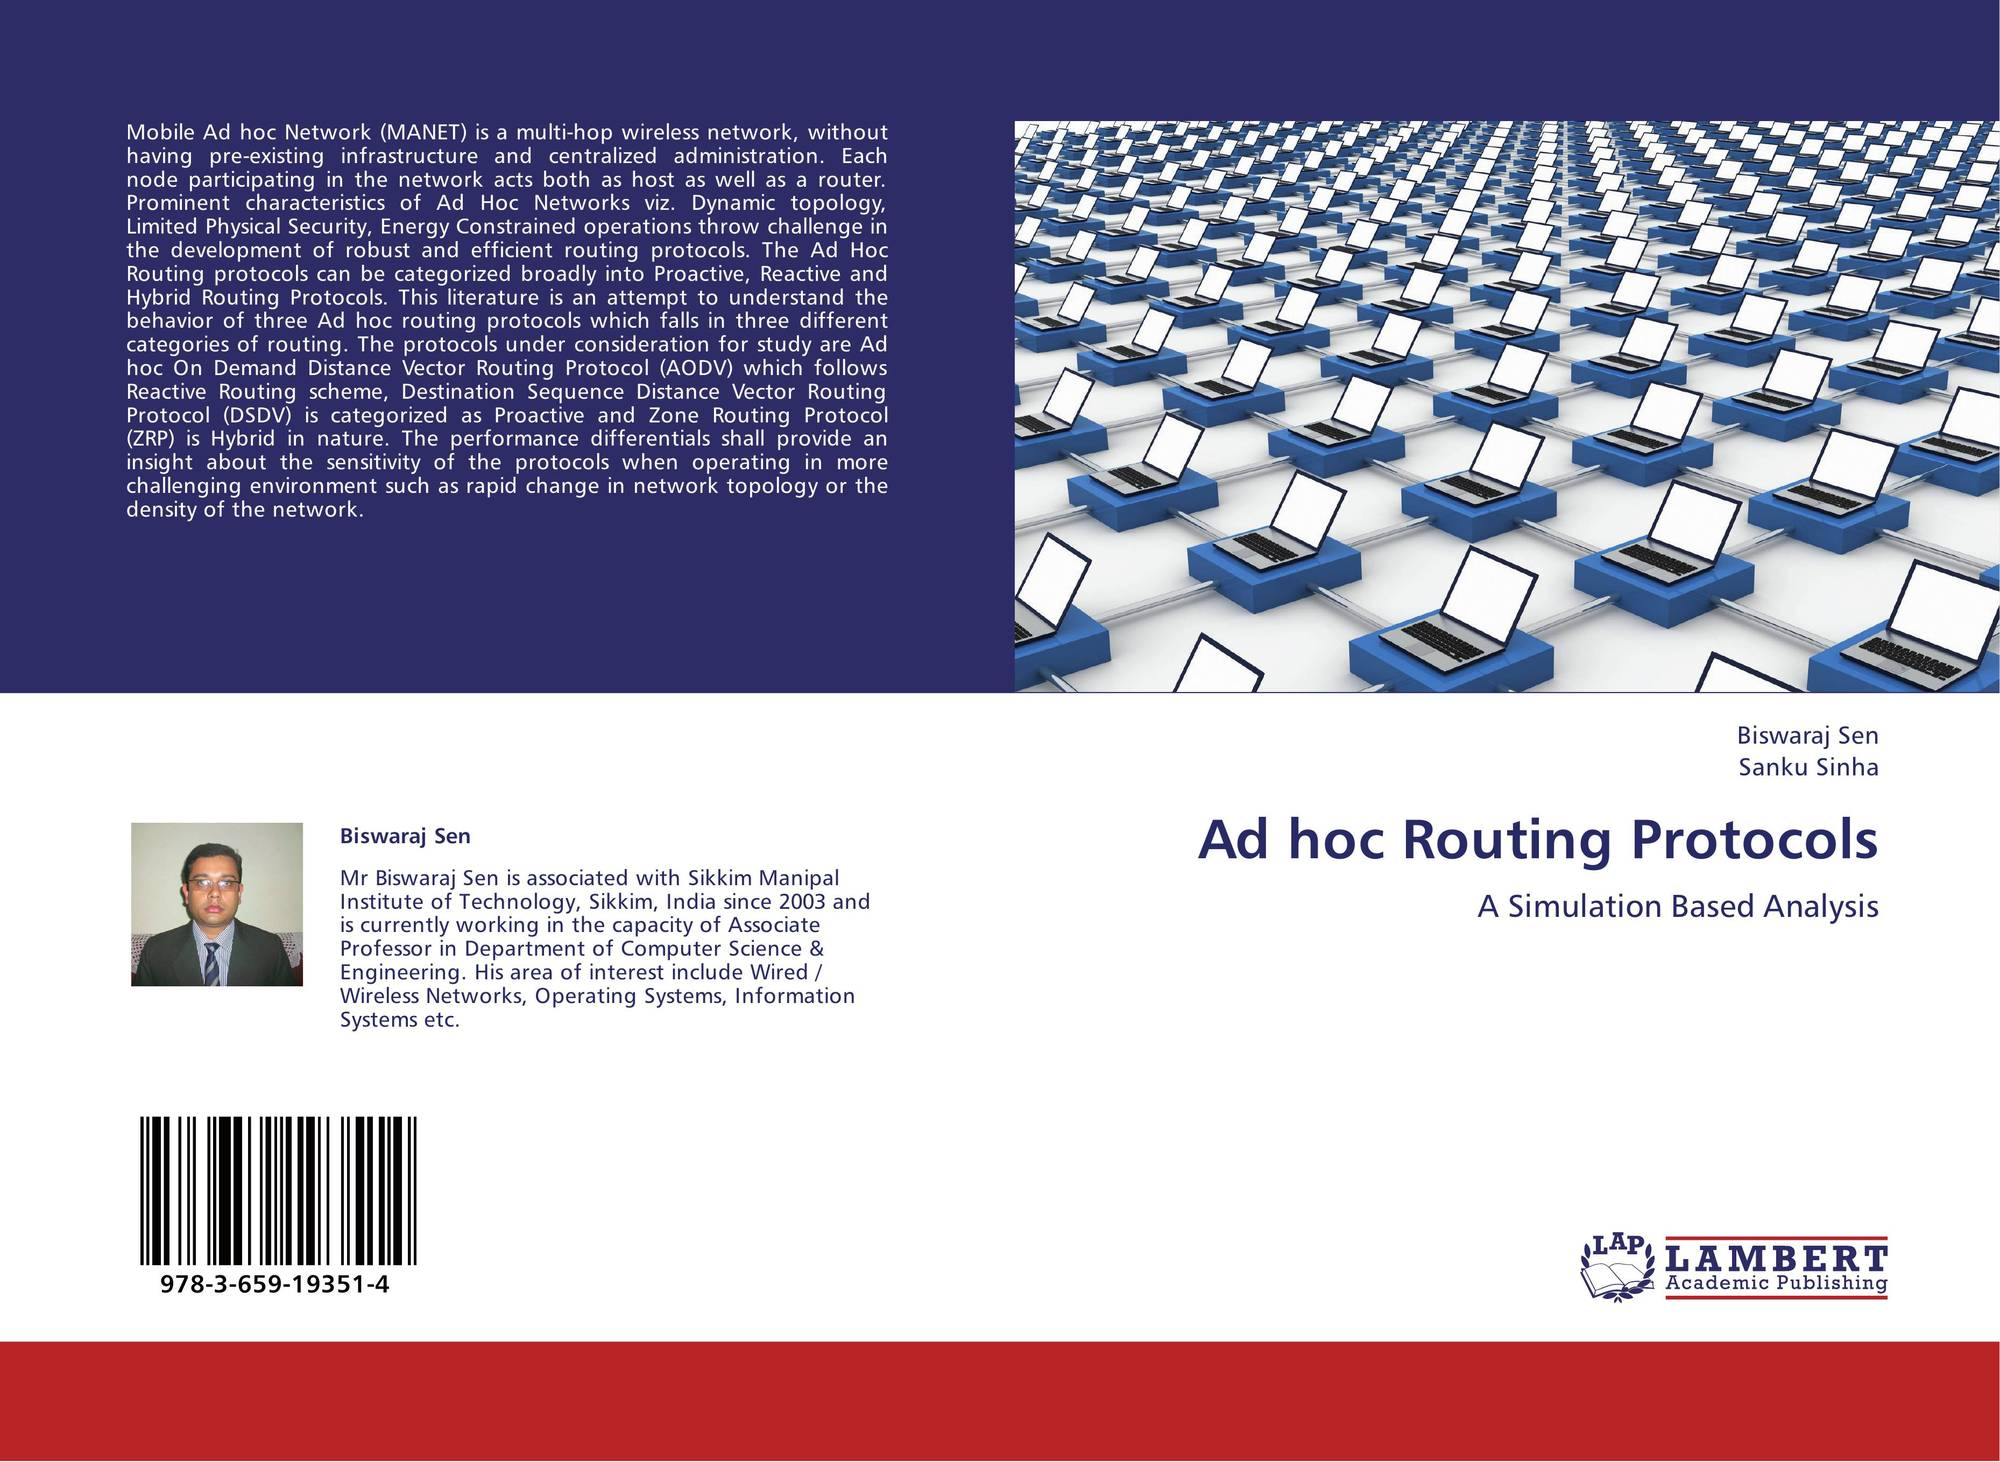 ad hoc routing protocols thesis An ad hoc routing protocol is a convention, or standard, that controls how nodes decide which way to route packets between computing devices in a mobile ad hoc network.